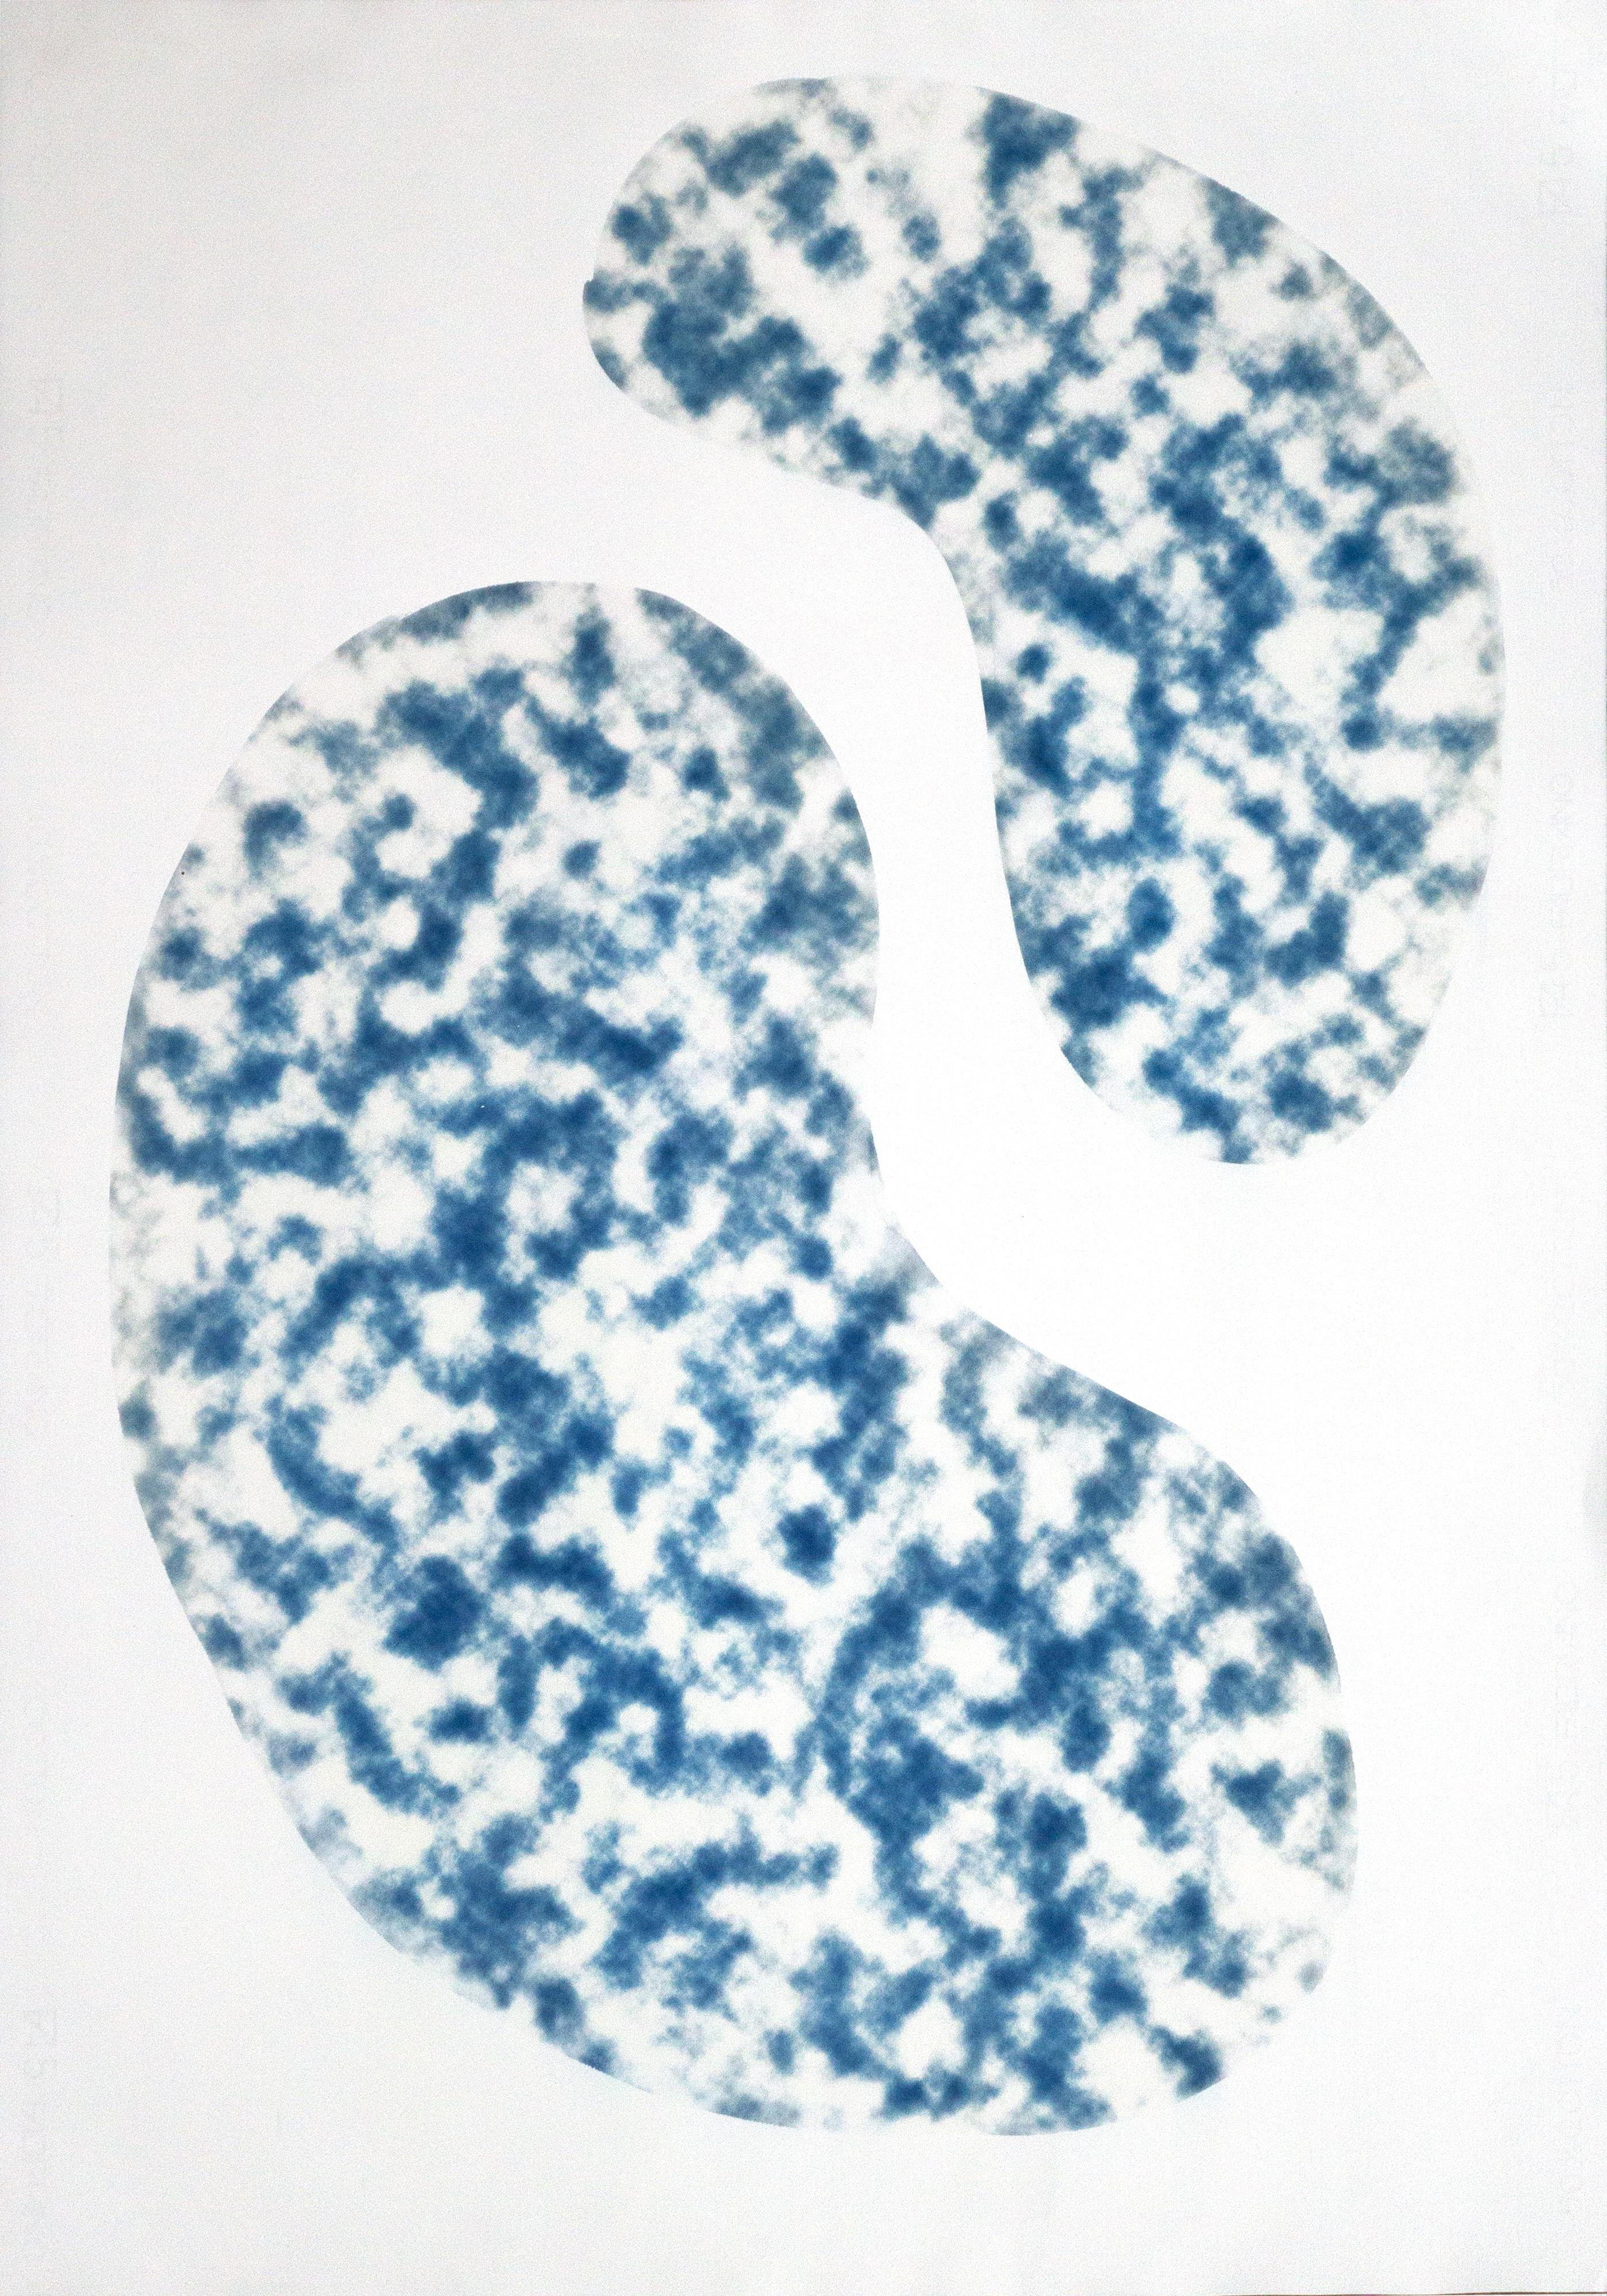 Kidney Bean Pools, Minimal Cyanotype Inspired by Architectural Pools, Cloudy